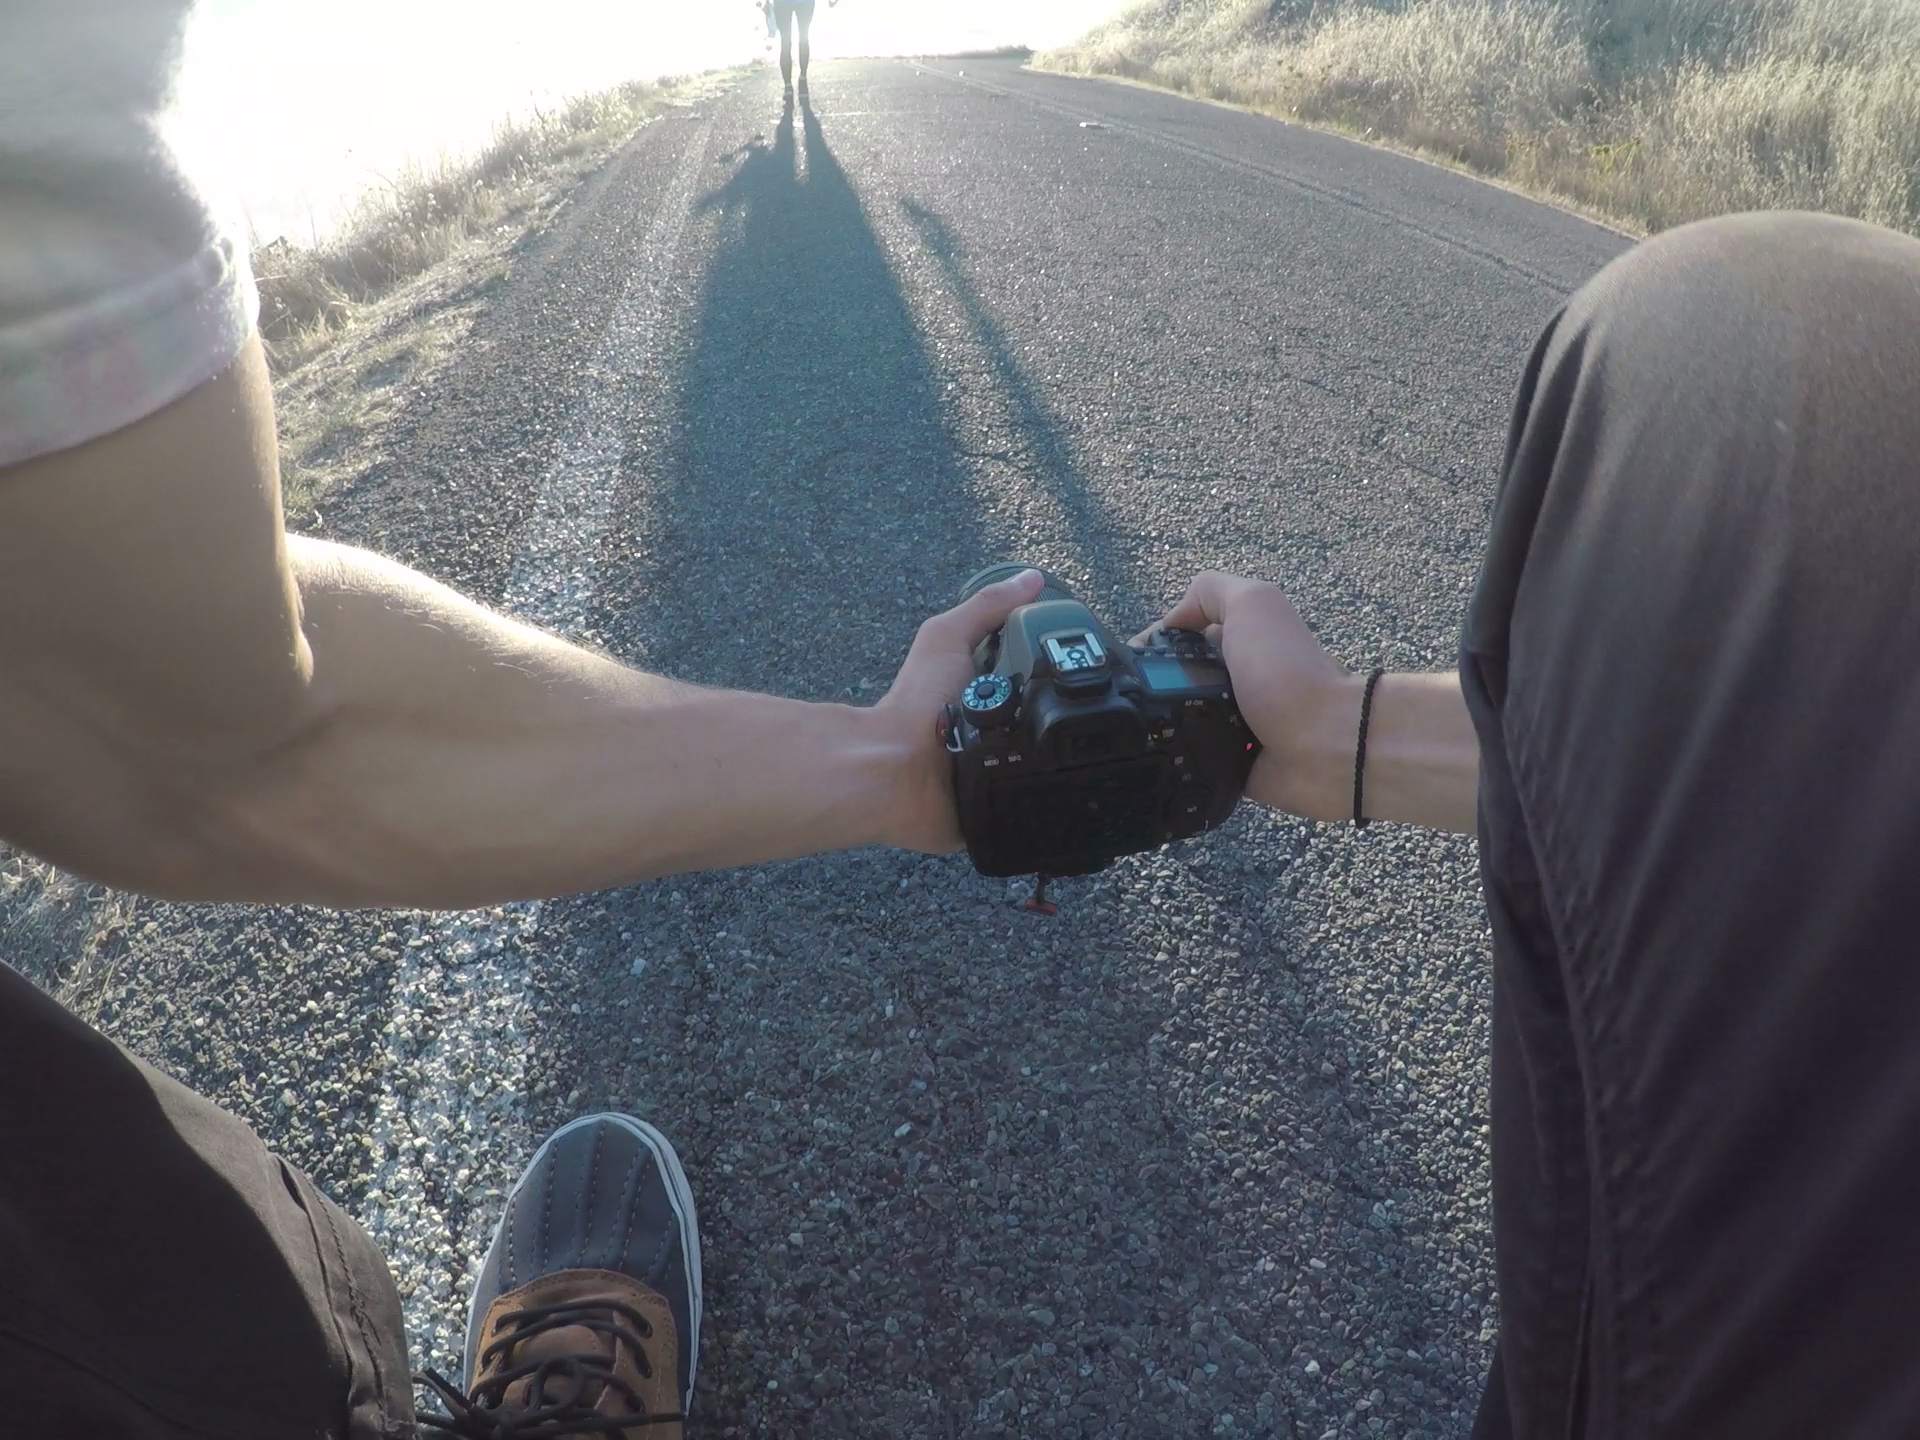 GoPro mounted my chest showing the exact angle used to capture the shot!